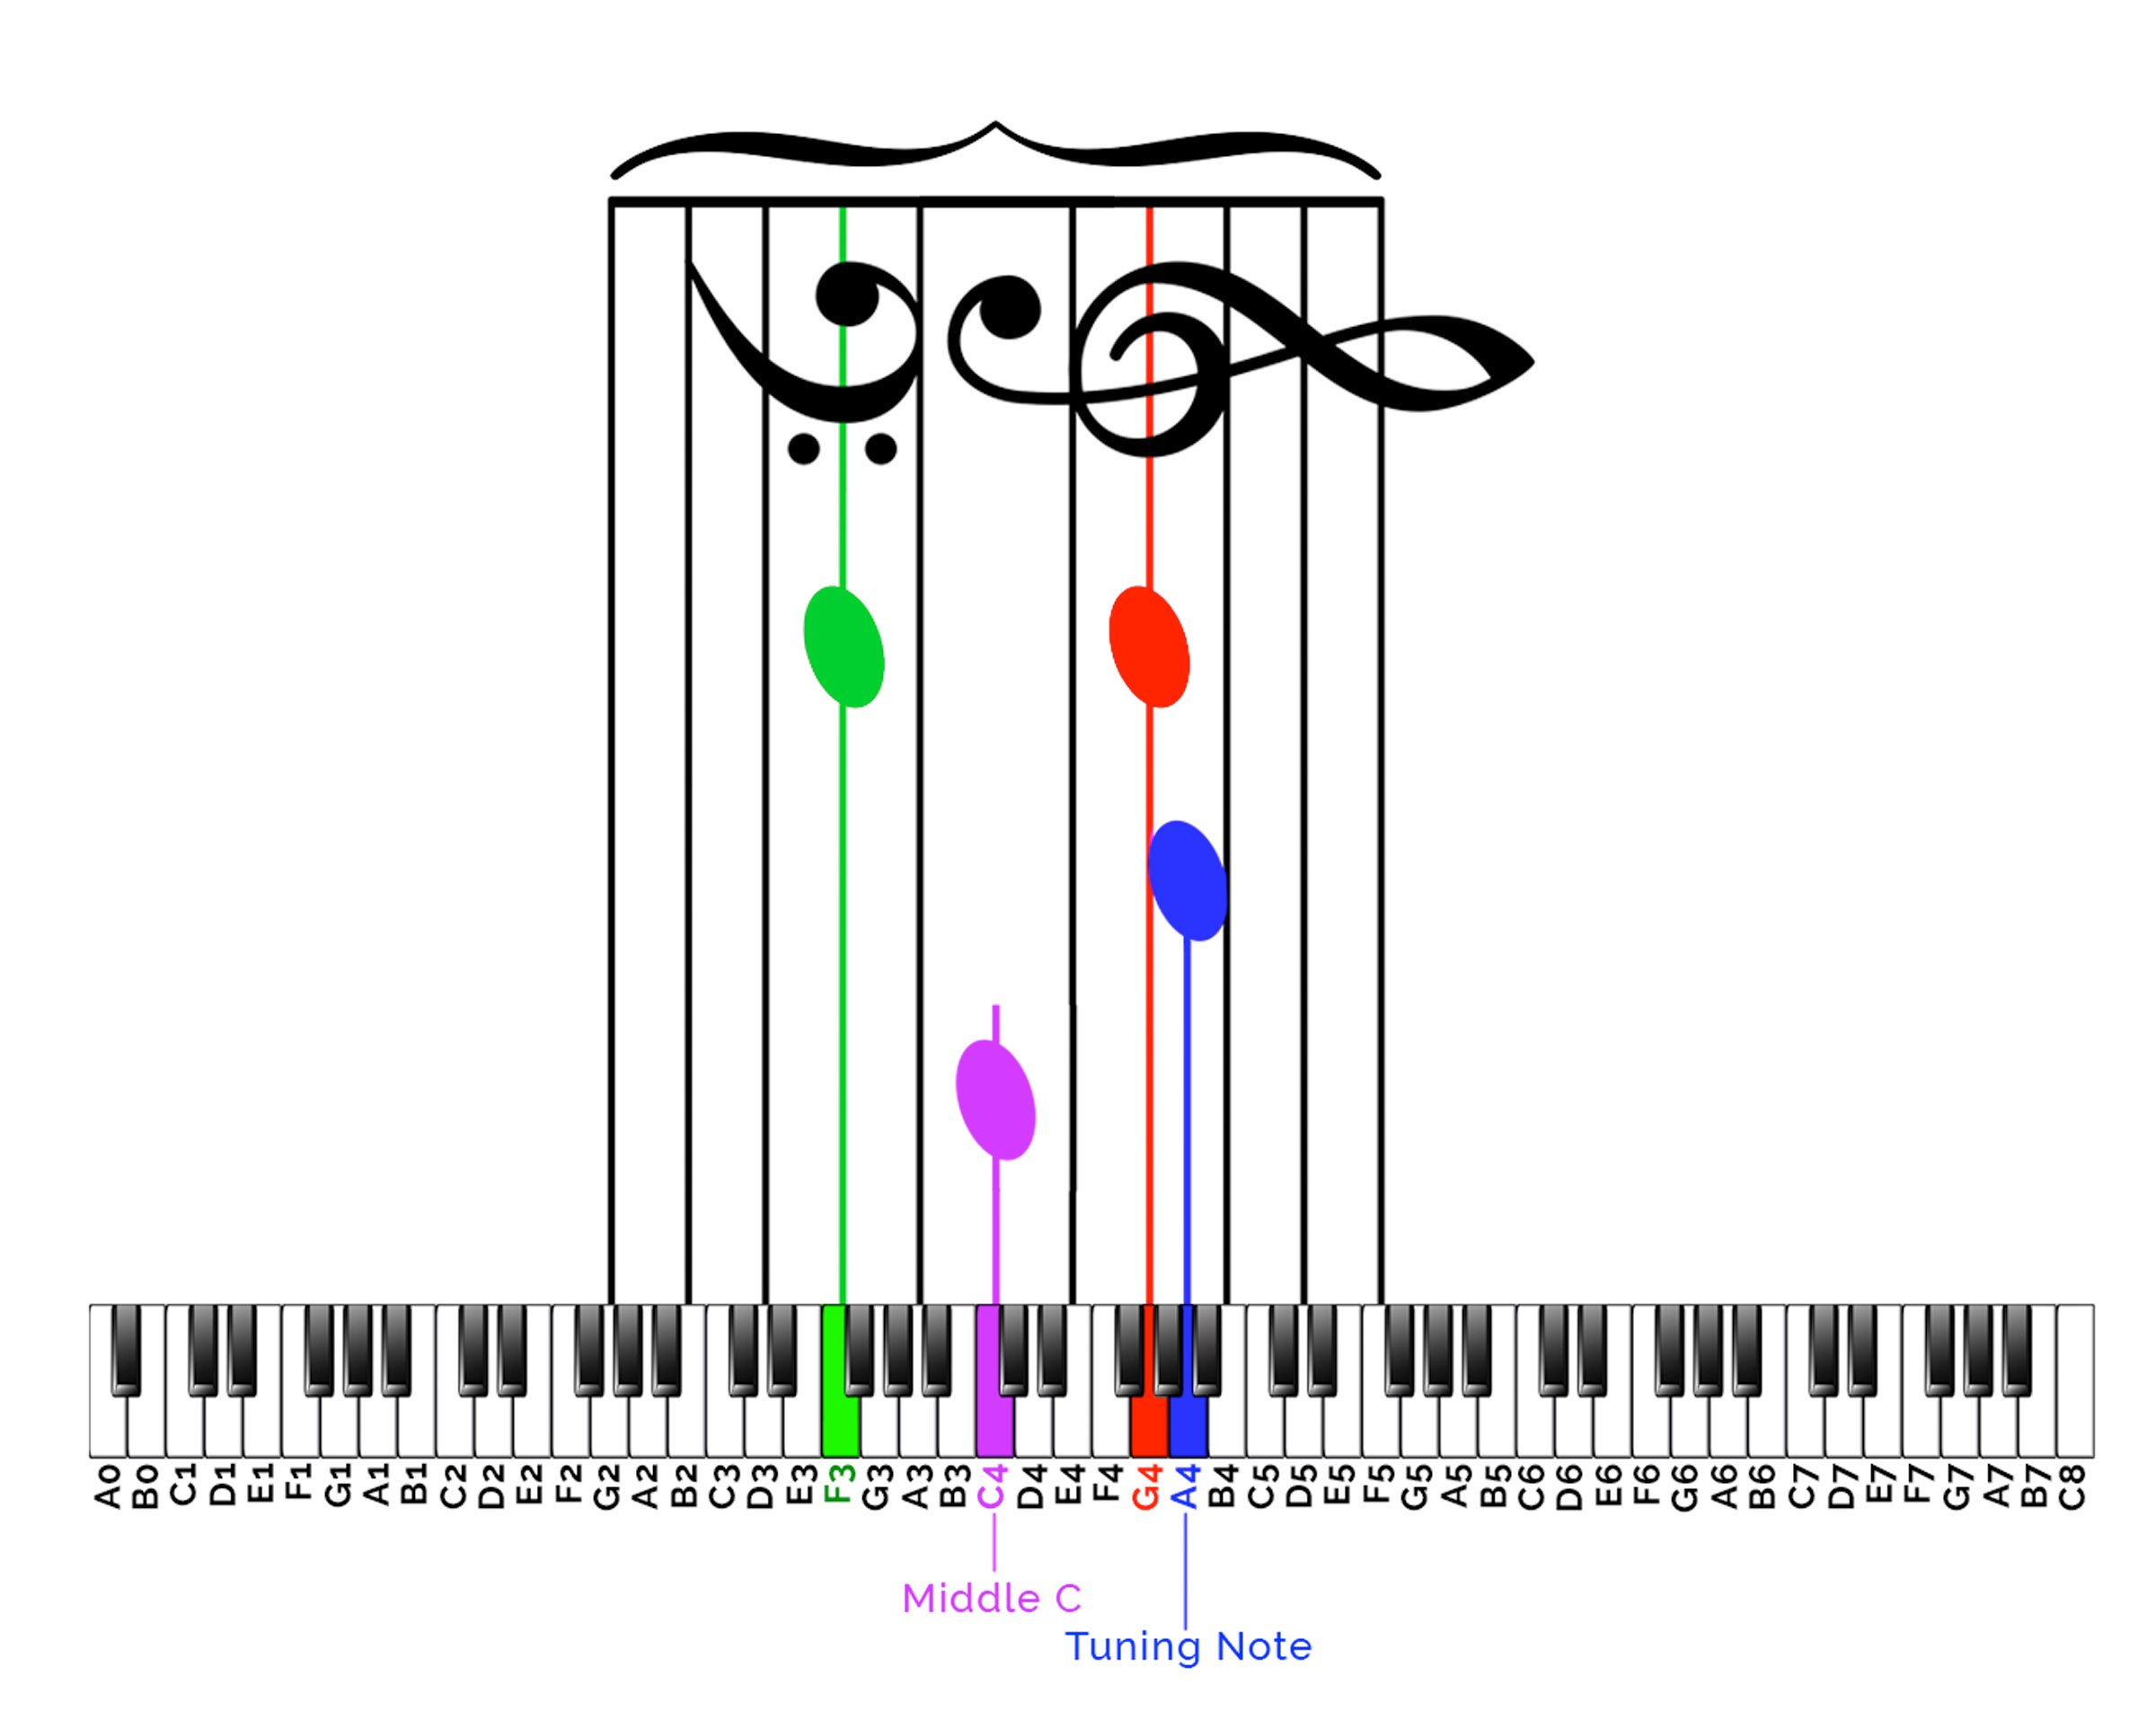 How To Read Musical Notes And Their Corresponding Piano